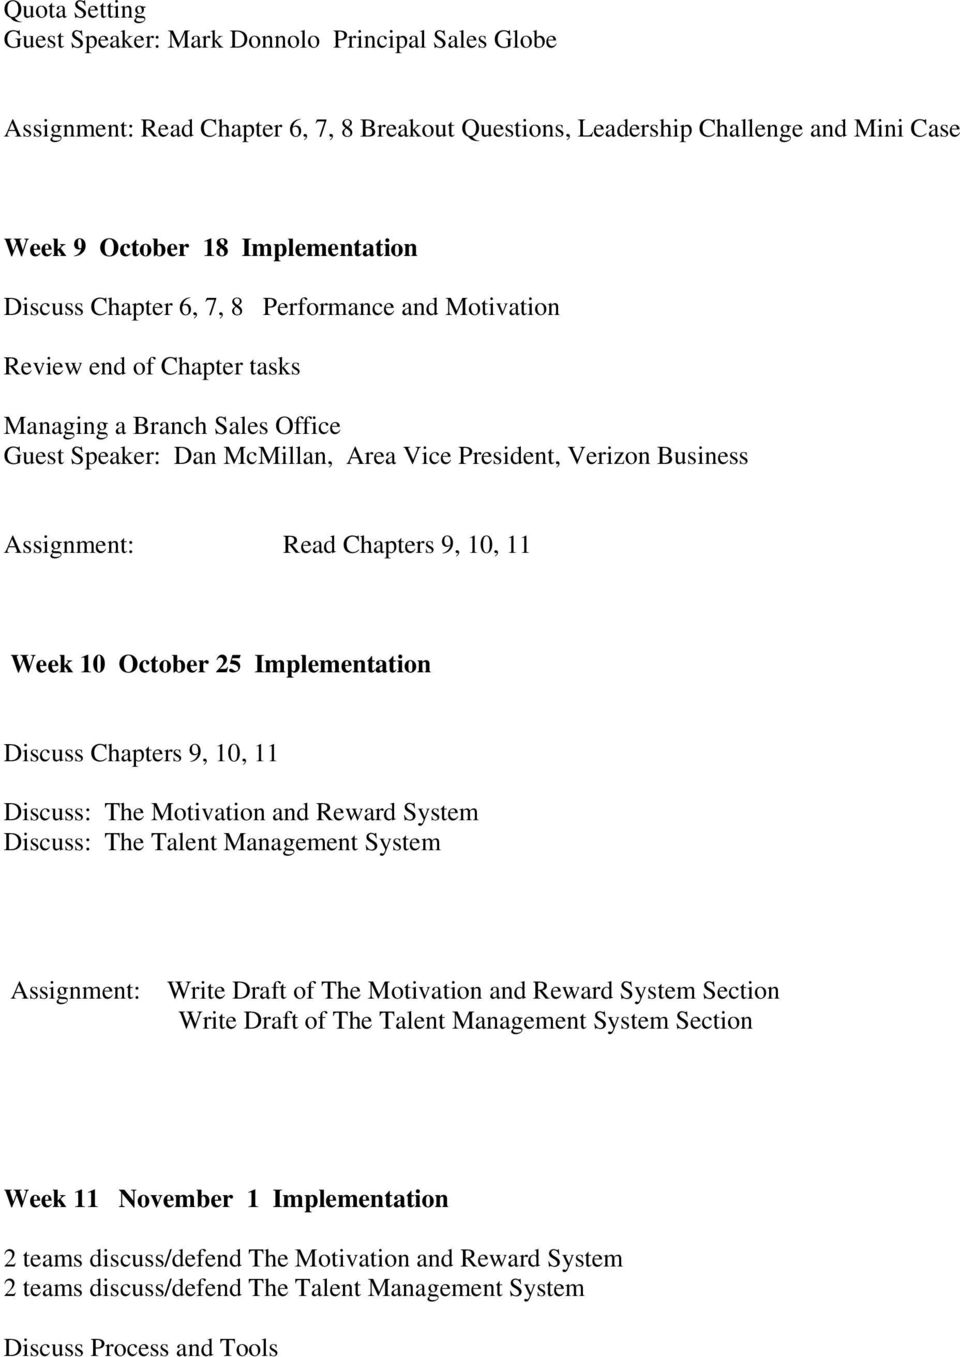 10, 11 Week 10 October 25 Implementation Discuss Chapters 9, 10, 11 Discuss: The Motivation and Reward System Discuss: The Talent Management System Assignment: Write Draft of The Motivation and